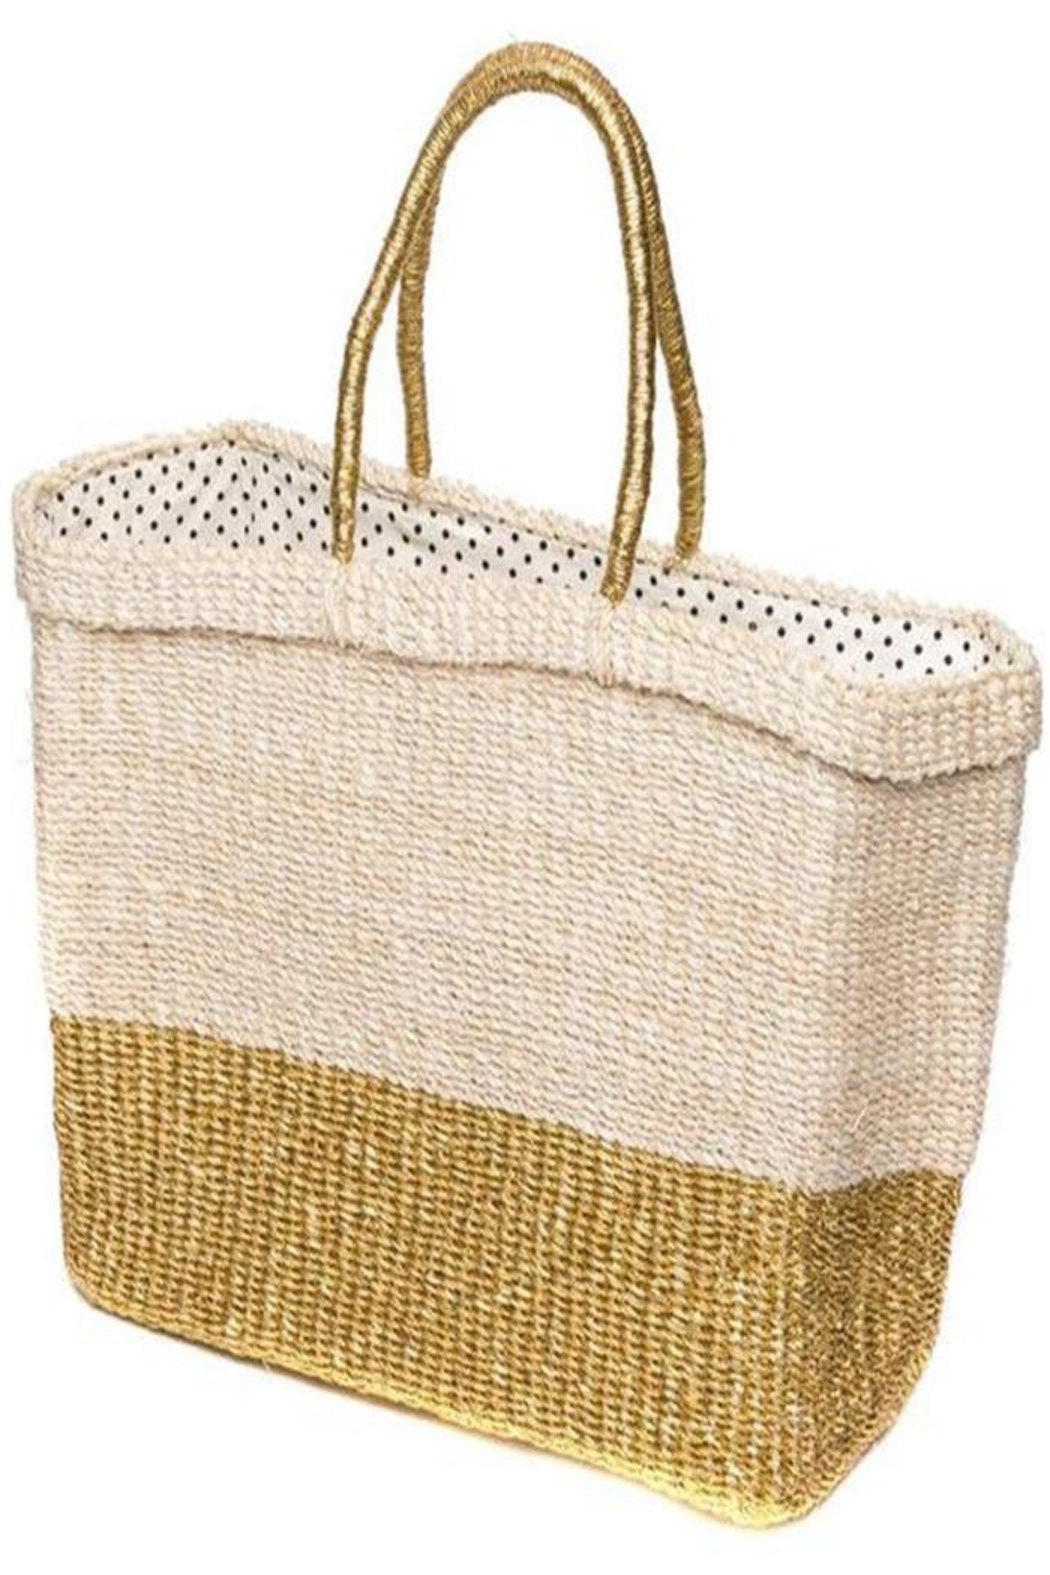 Femme Boutique Boston  Golden Reflections Tote - Main Image